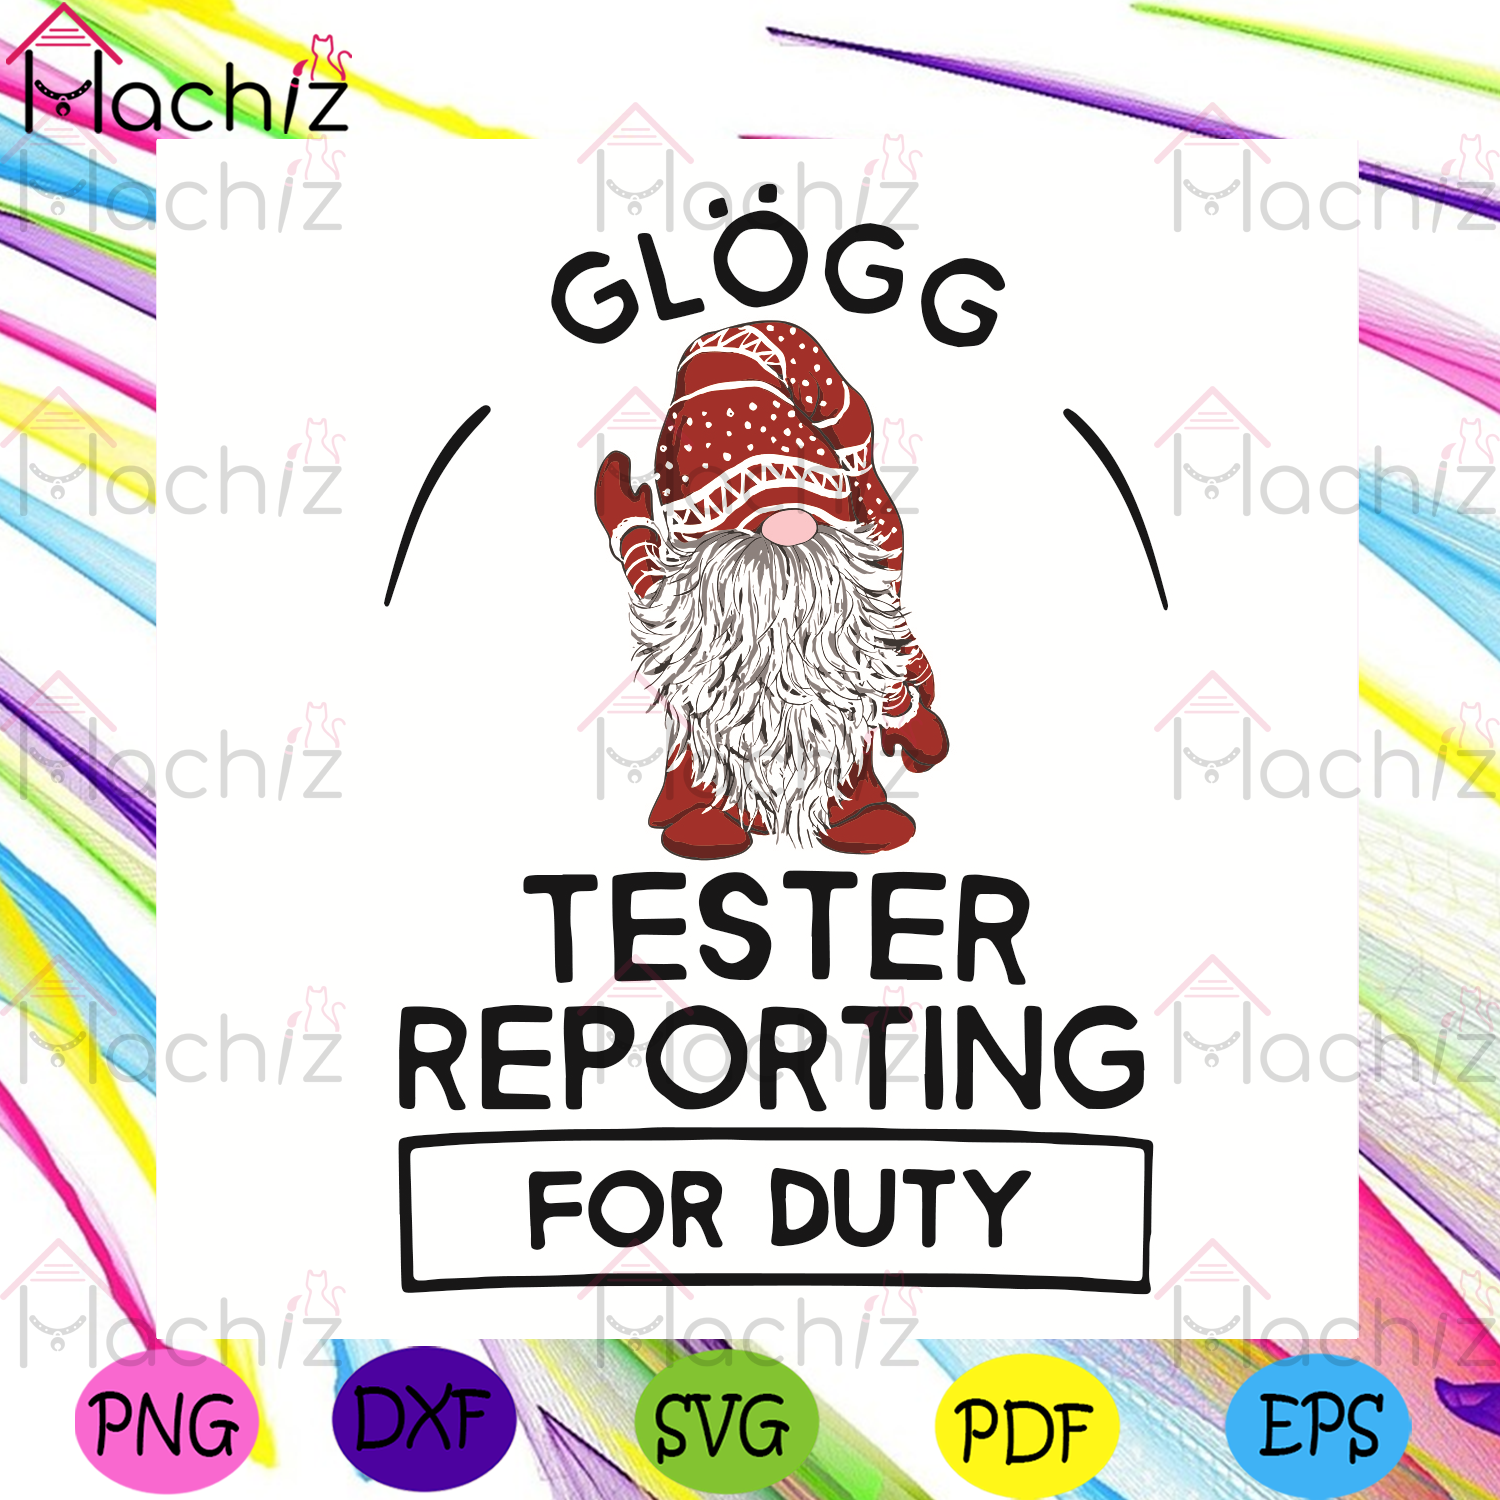 Glogg Tester Reporting For Duty Svg, Christmas Svg. Gnome Svg, Santa Claus Svg, Tester Svg, Christmas Day Svg, Christmas Gifts Svg, Merry Christmas Svg, Christmas Holiday Svg, Baby Christmas Svg, Xmas Svg, Noel Svg,